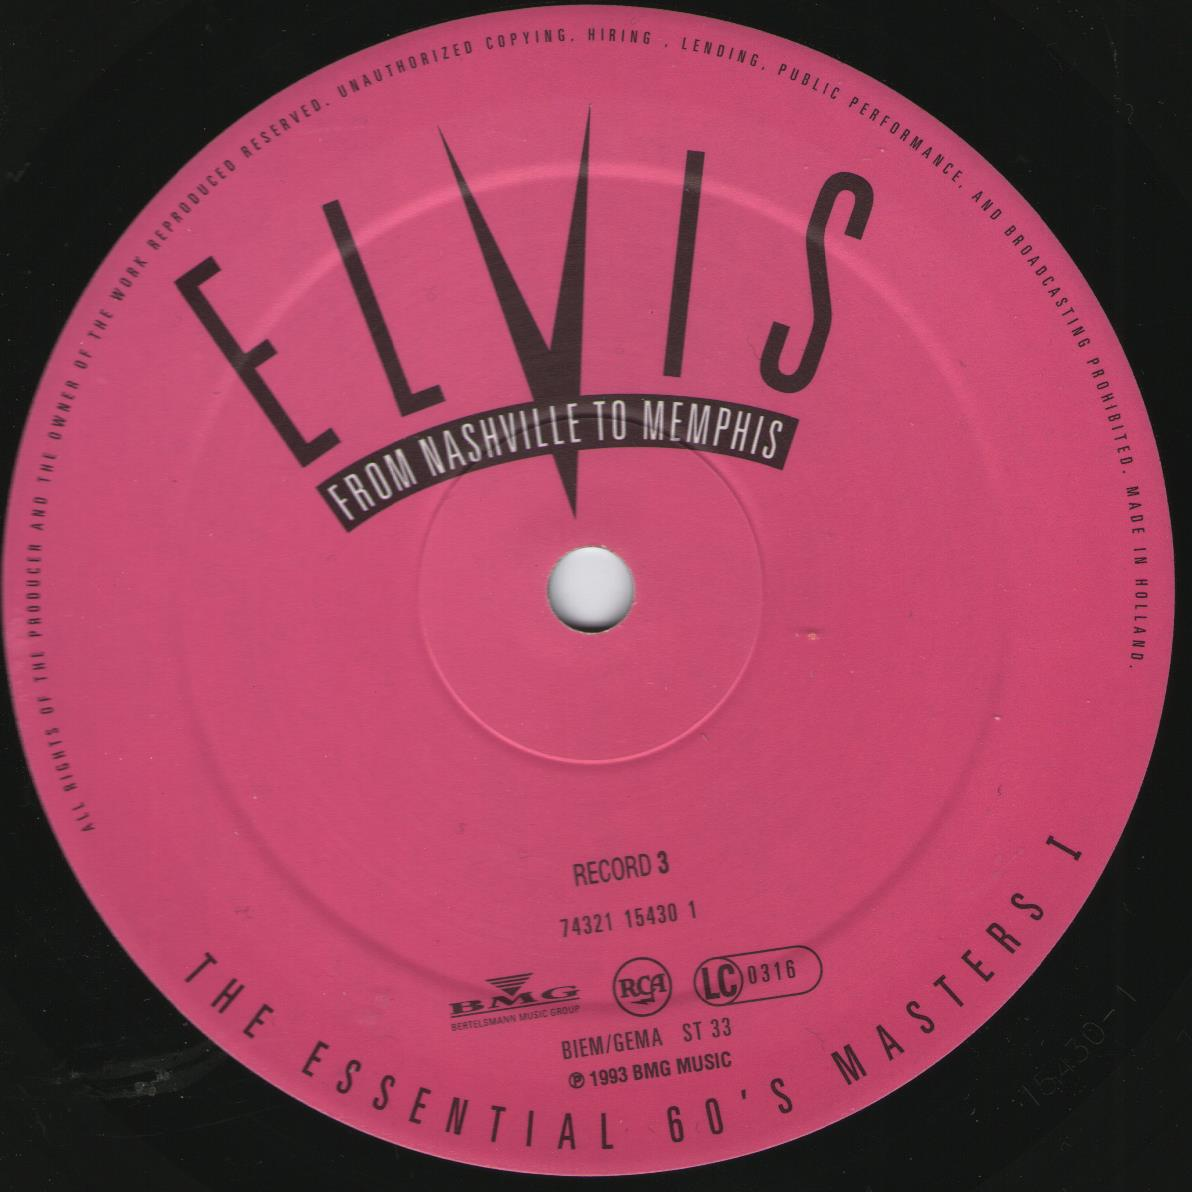 ELVIS - FROM NASHVILLE TO MEMPHIS - THE ESSENTIAL 60'S MASTERS Bild59csy4